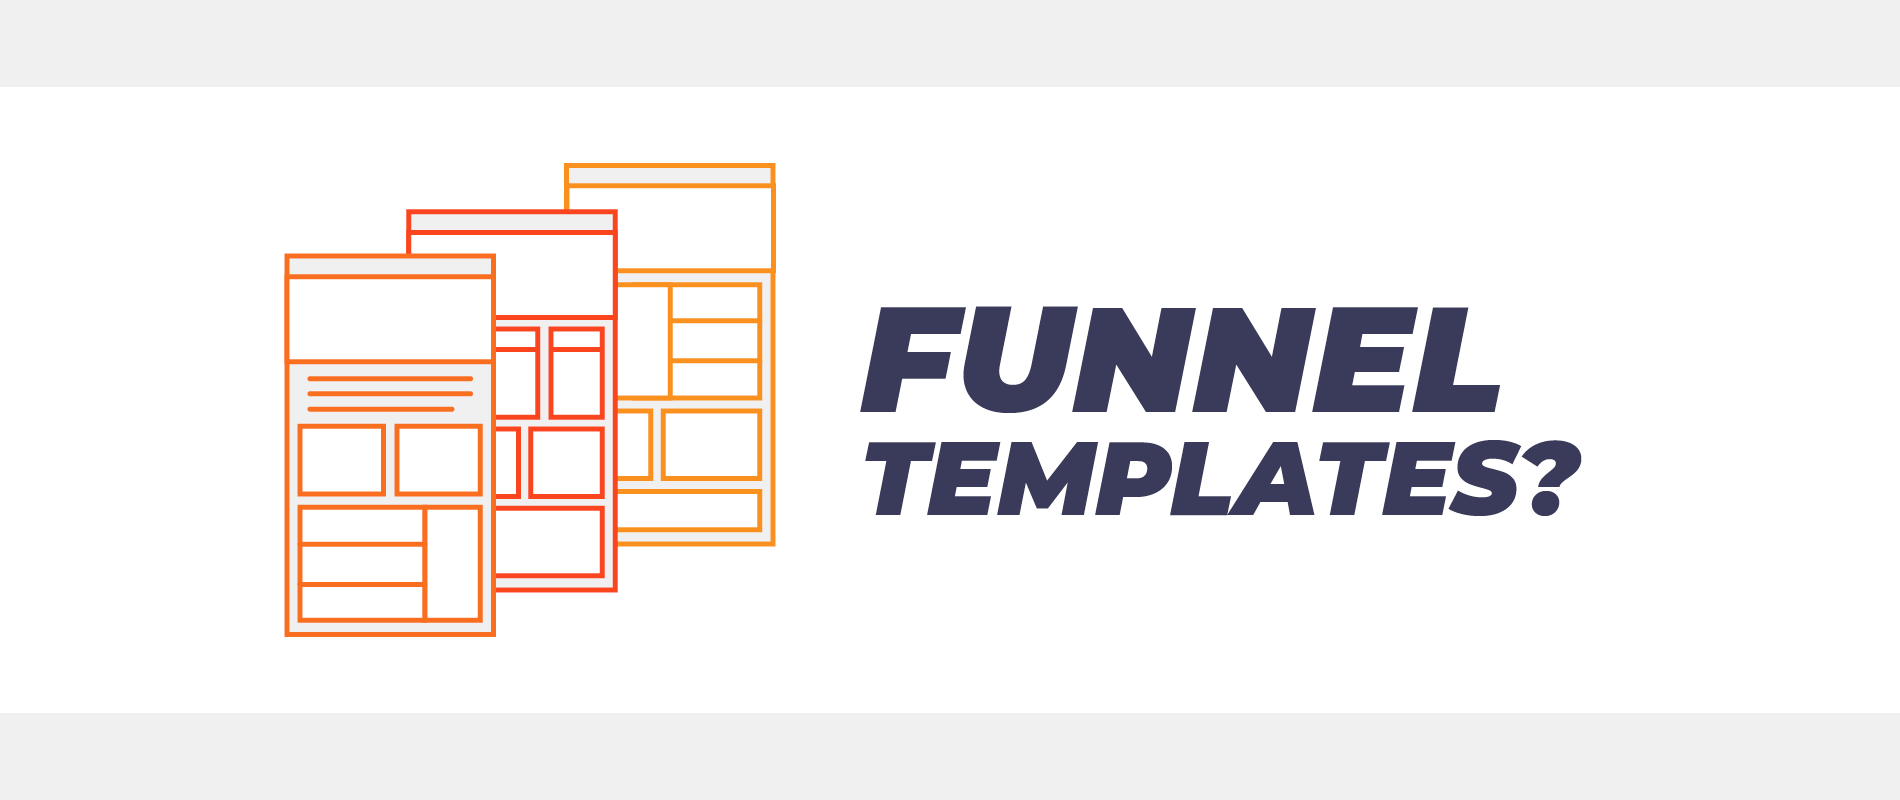 Choosing the Best Sales Funnel Template for SaaS?